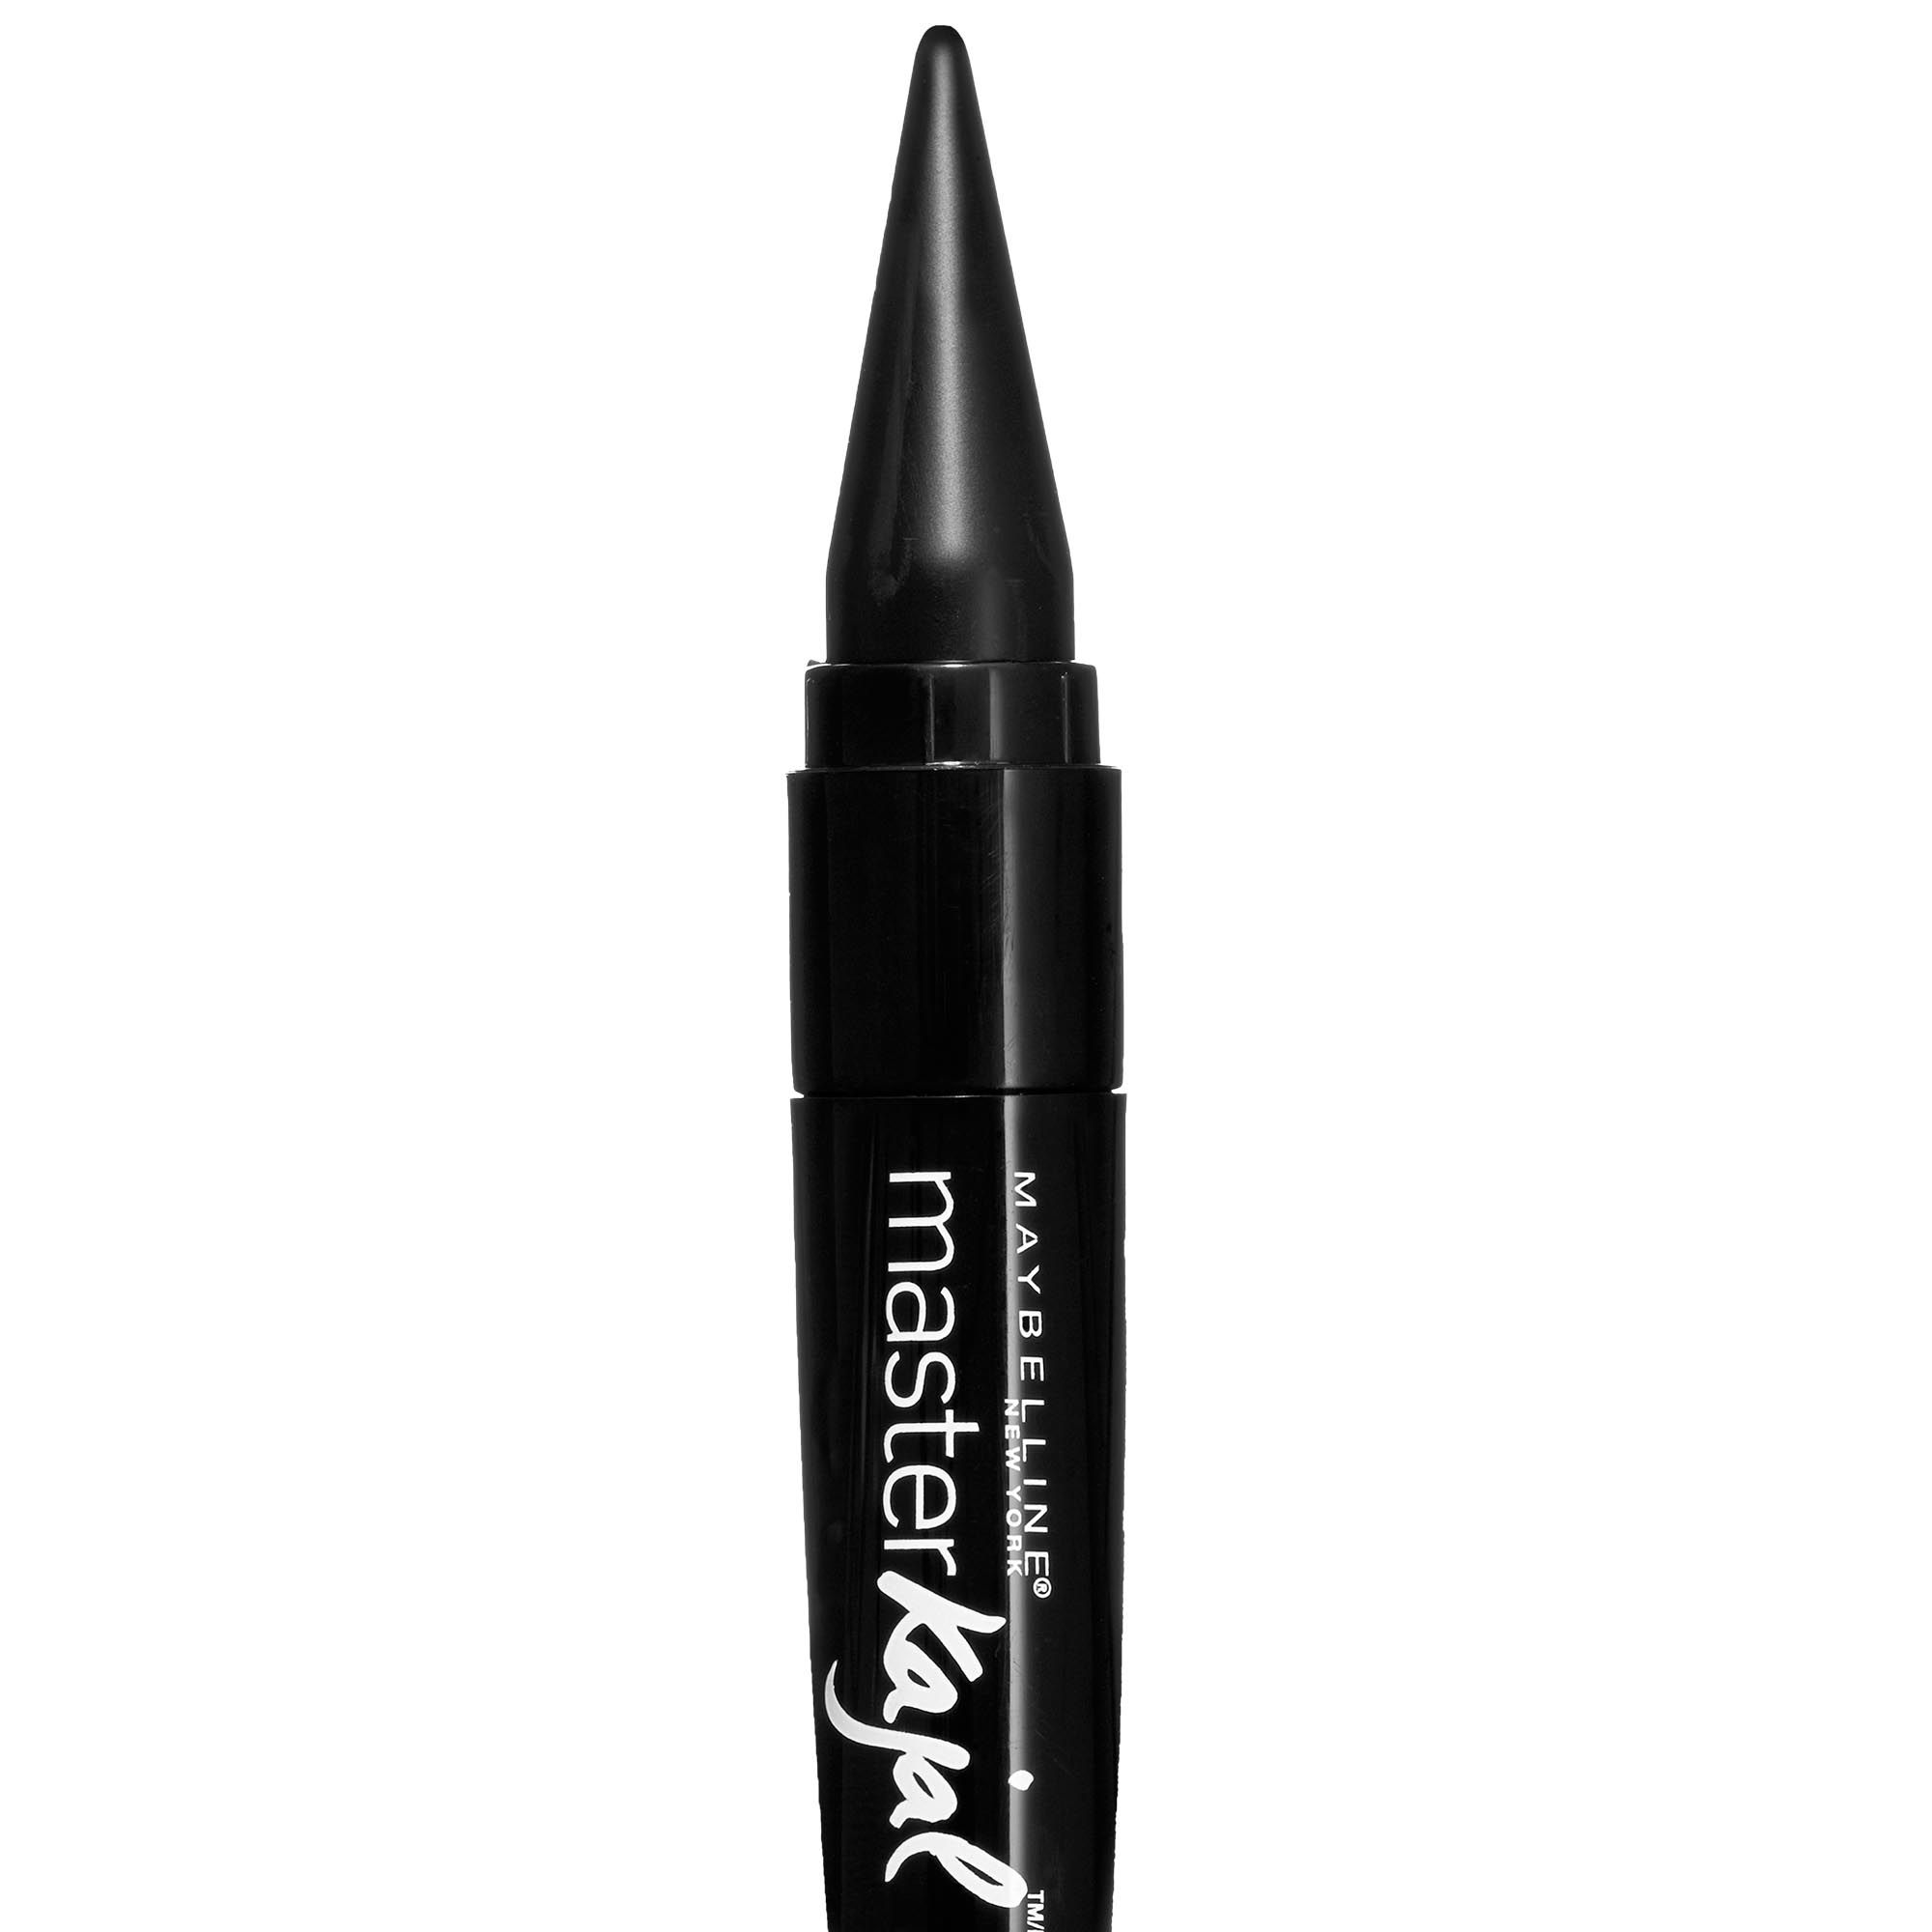 "<p><strong>Maybelline New York </strong>Eye Studio Master Graphic Liquid Liner in Striking Black, $7.99, <a href=""http://www.maybelline.com/Products/Eye-Makeup/Eye-Liner/Eye-Studio-Master-Graphic.aspx"" target=""_blank"">maybelline.com</a>. </p>"